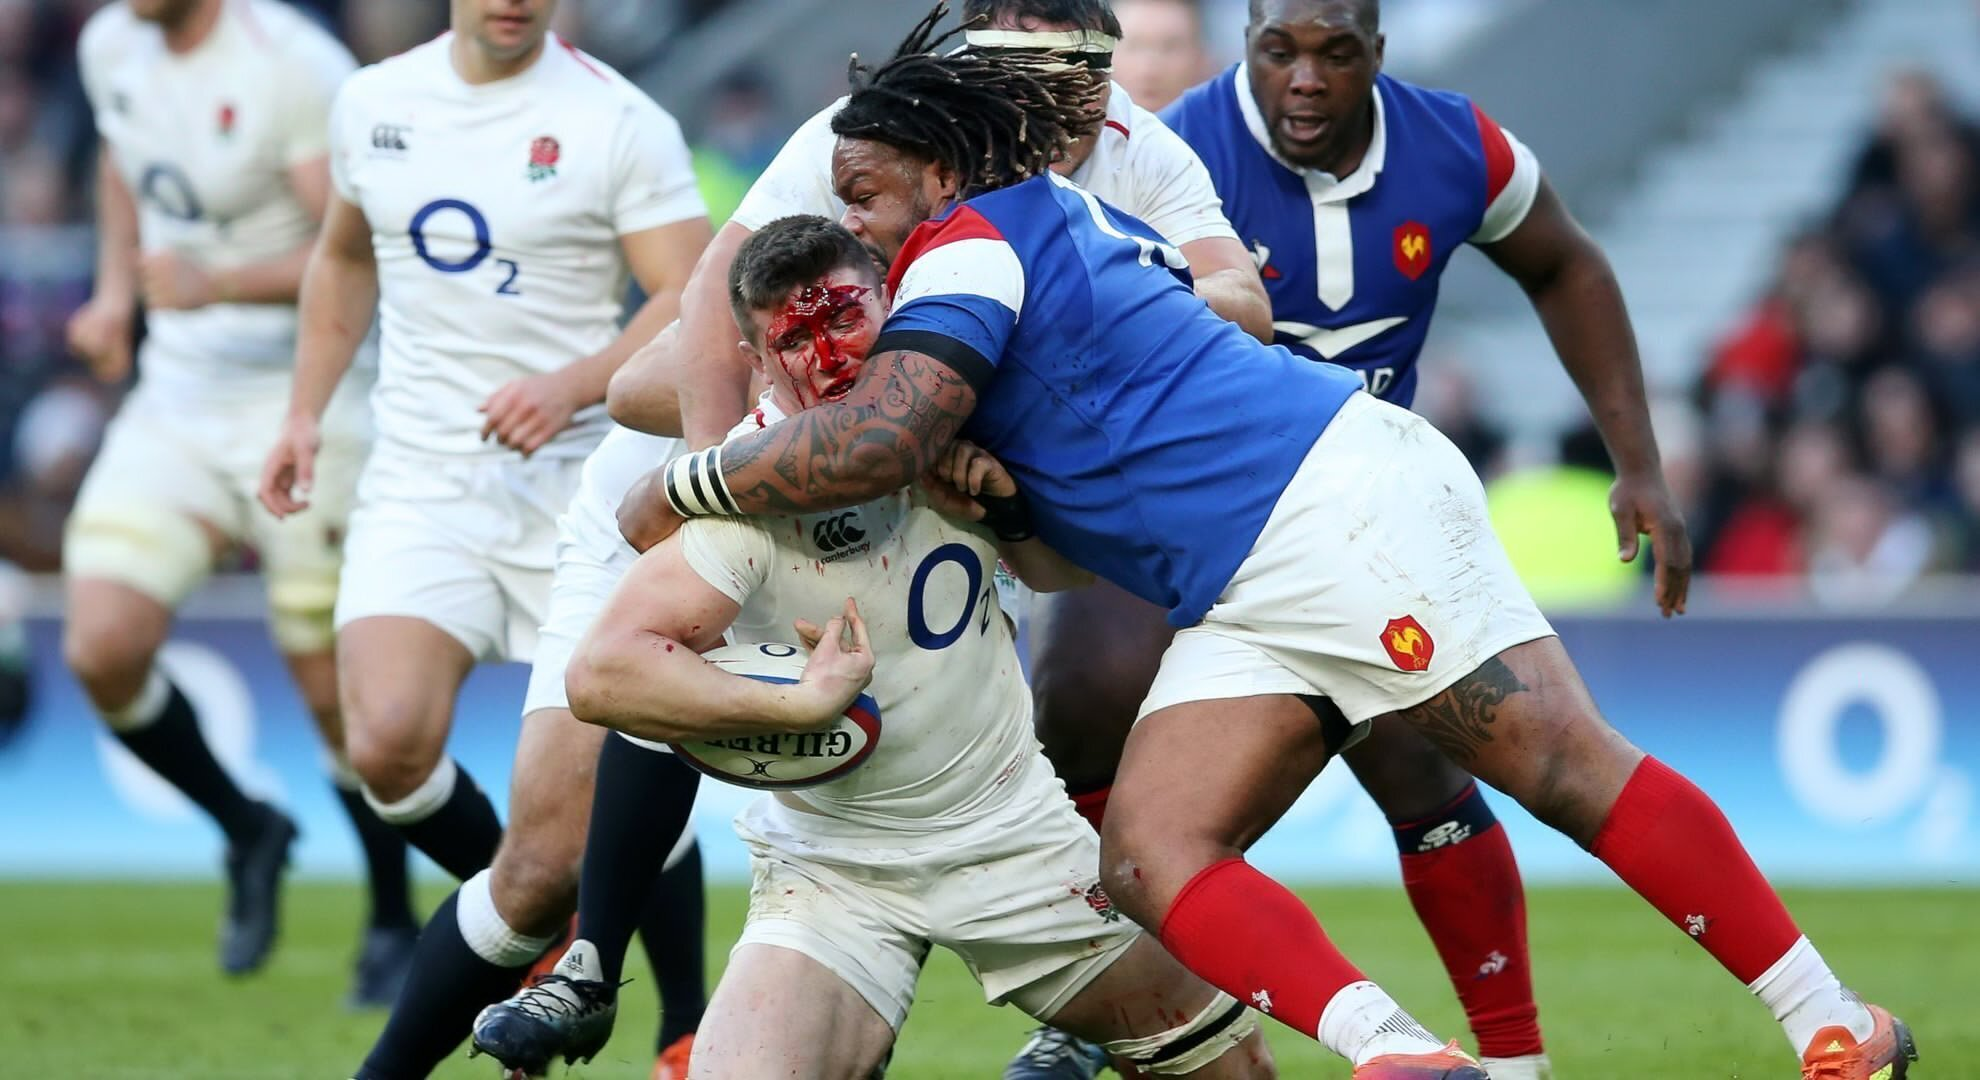 SIX NATIONS IN PICTURES: Curry blood and magnificent May